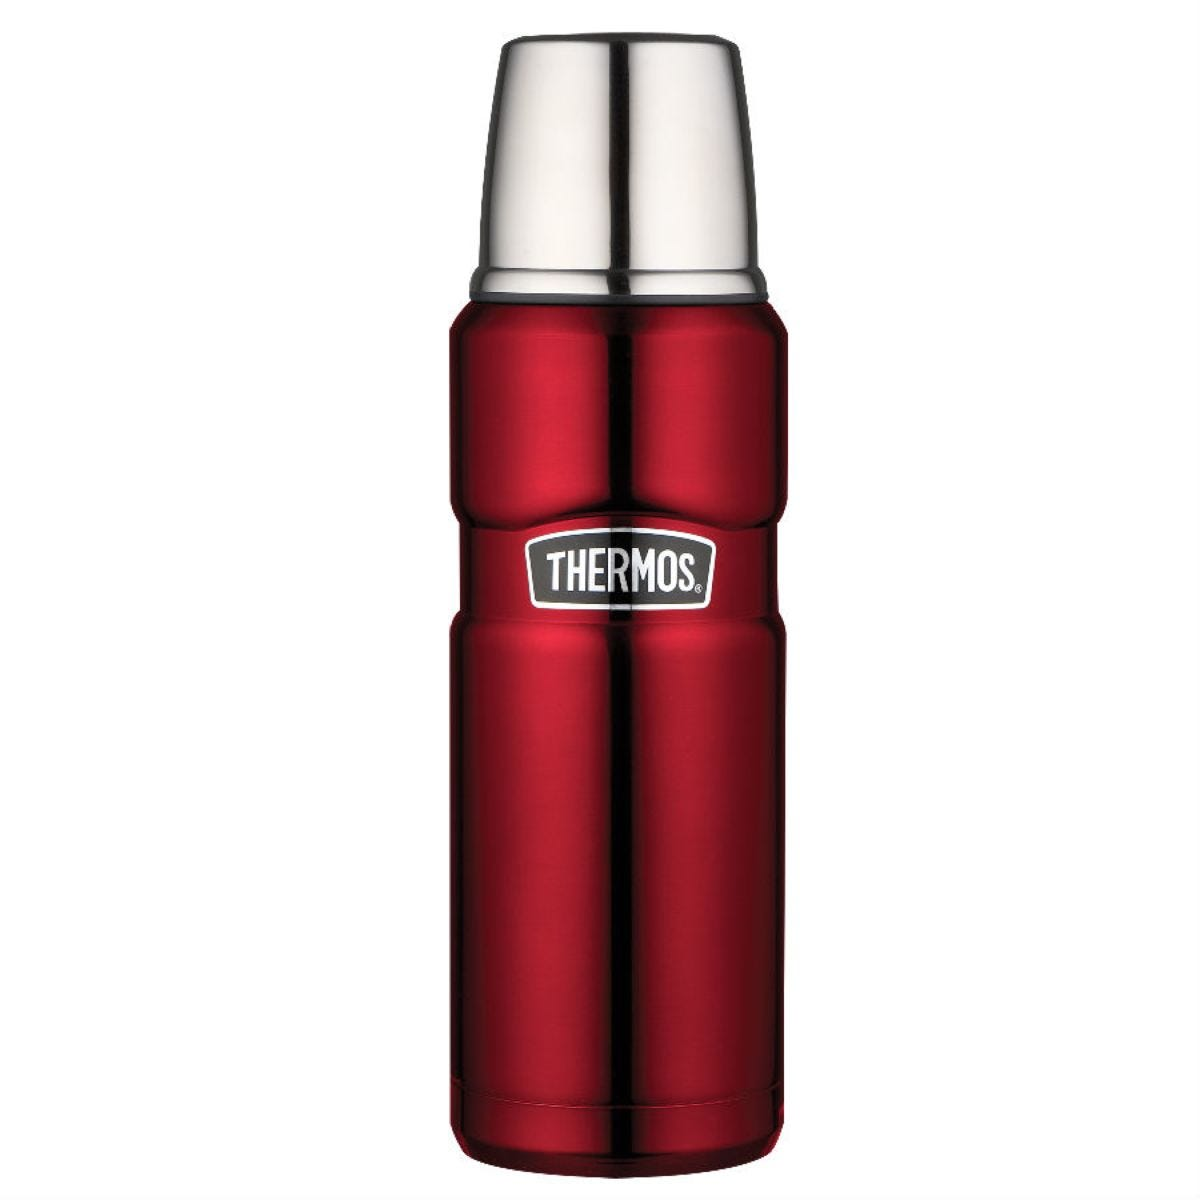 Thermos 470ml Stainless Steel Flask - Red